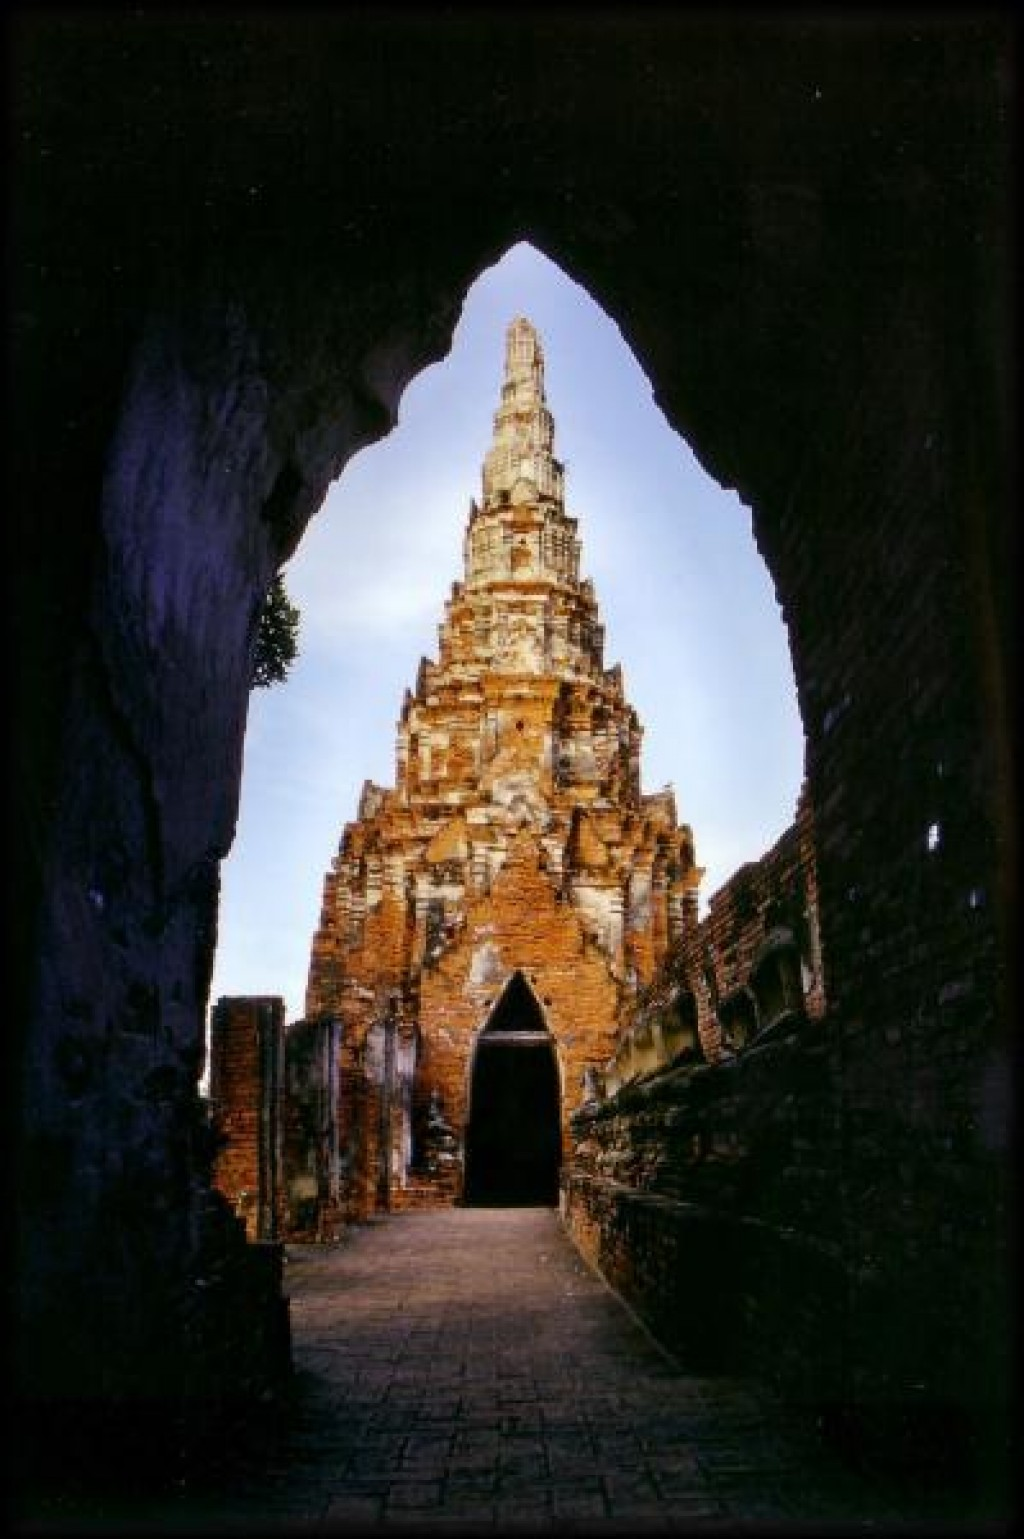 This is the Whan Phra Mongkhon temple just outside Wat Phra Si Sanphet.